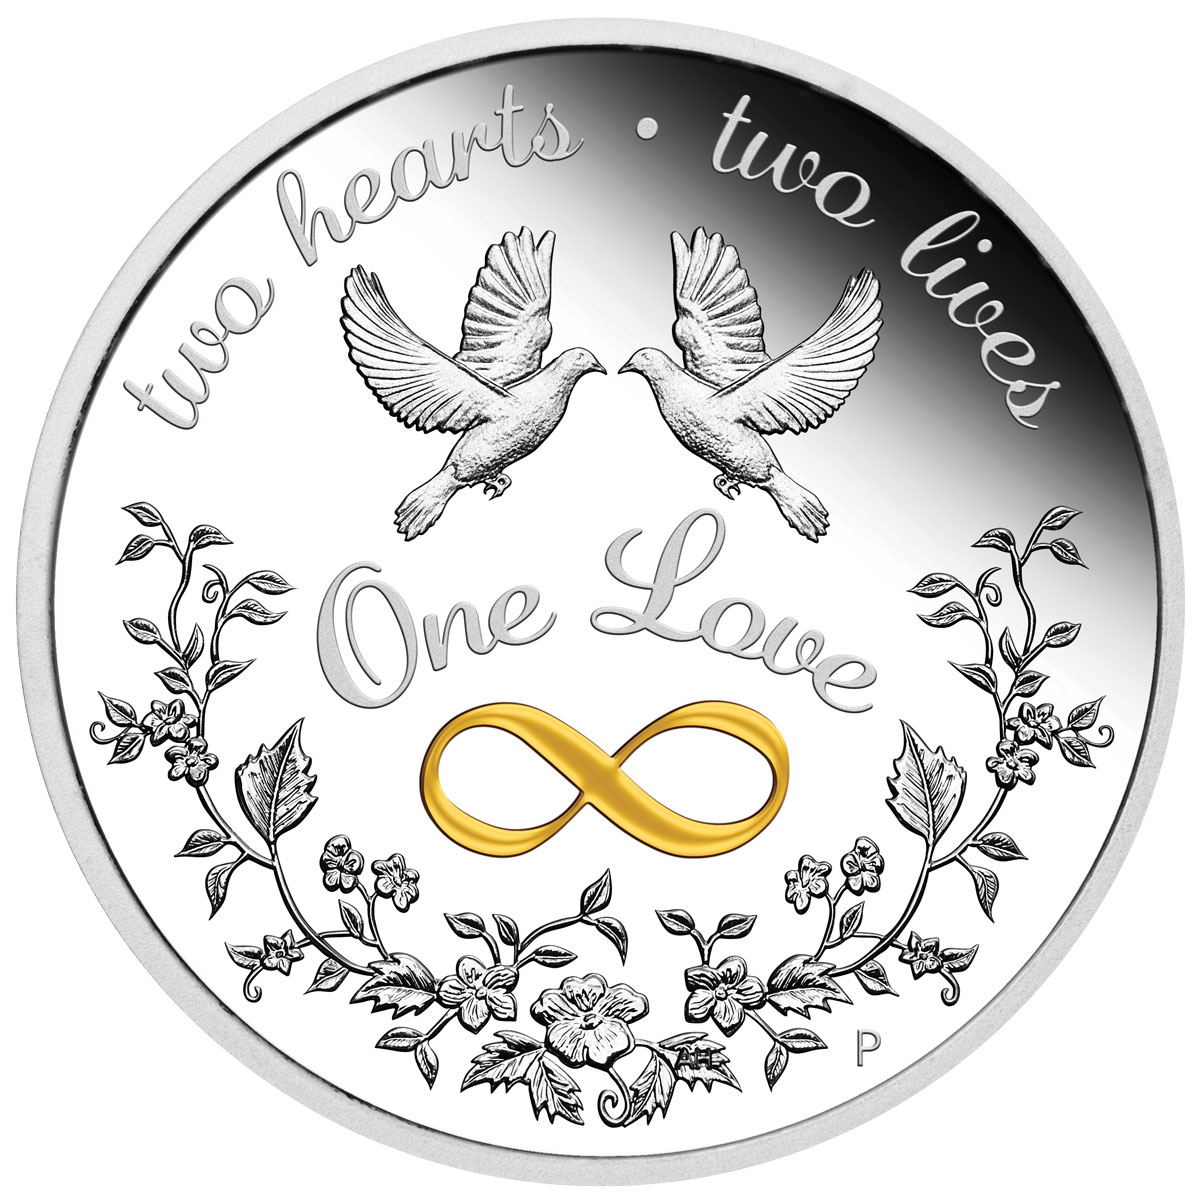 2021-P Australia One Love 1 oz Silver Proof $1 Coin GEM Proof OGP